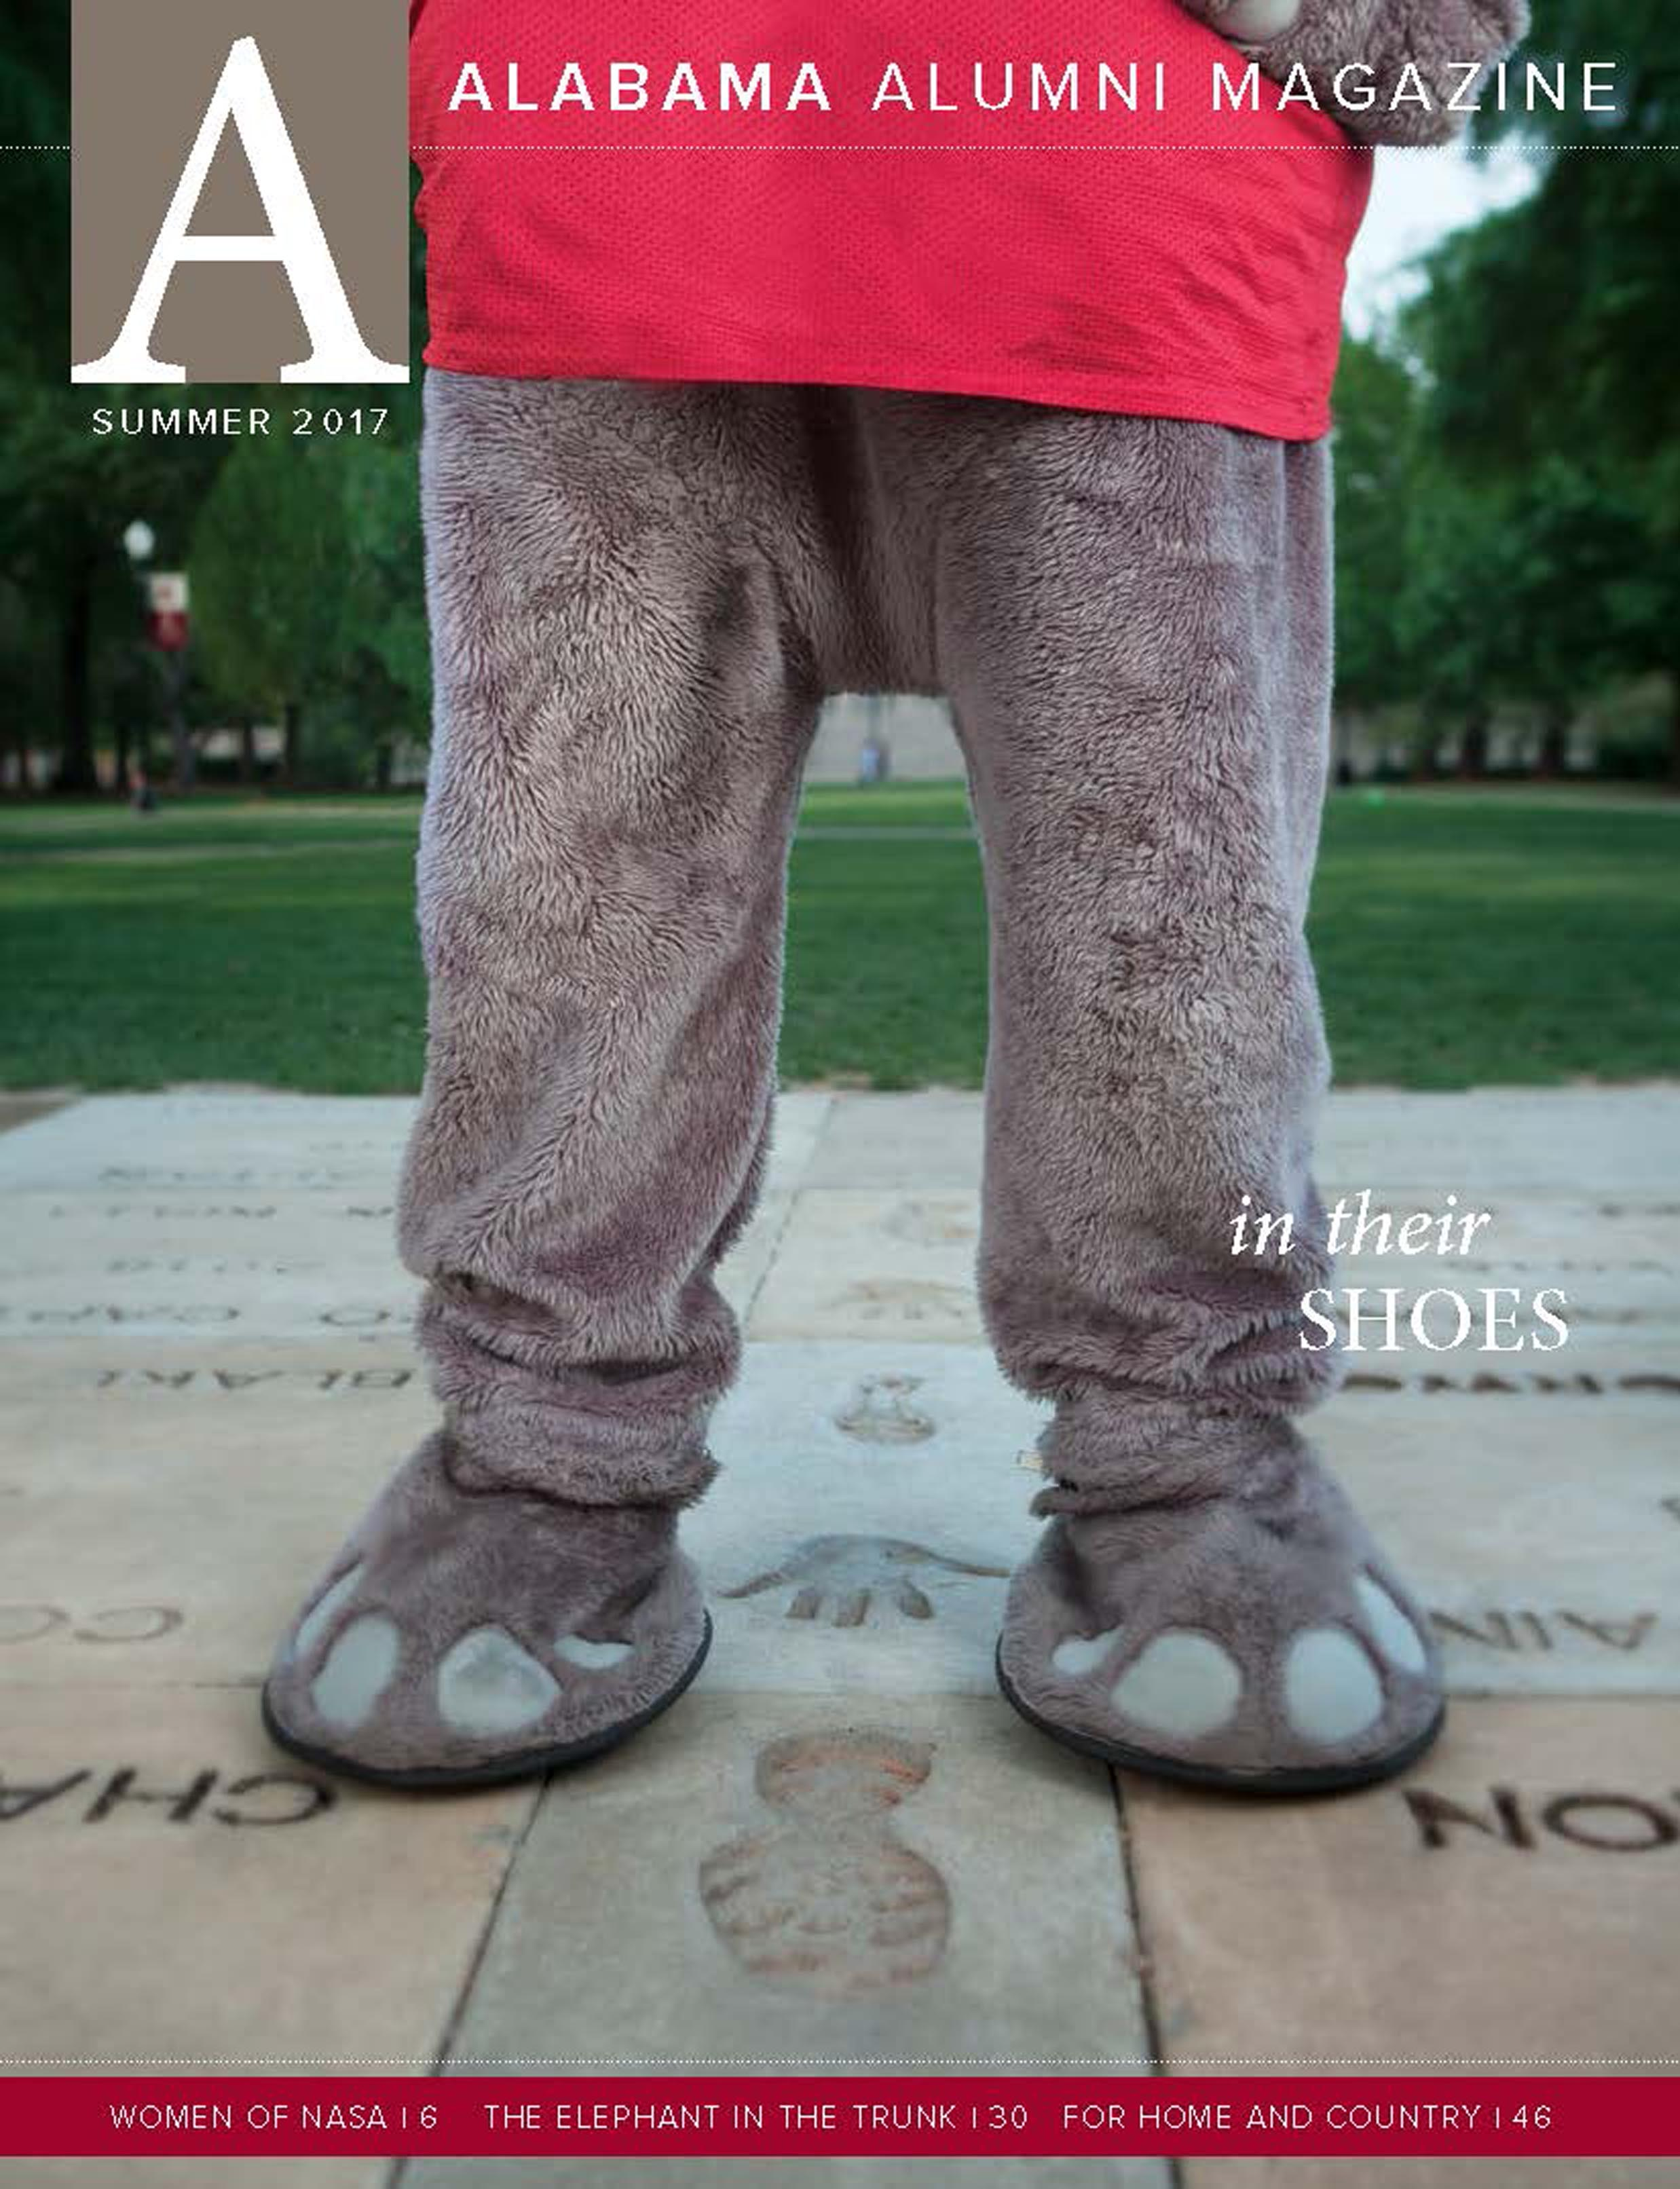 Alumni Magazine Summer 2017 cover